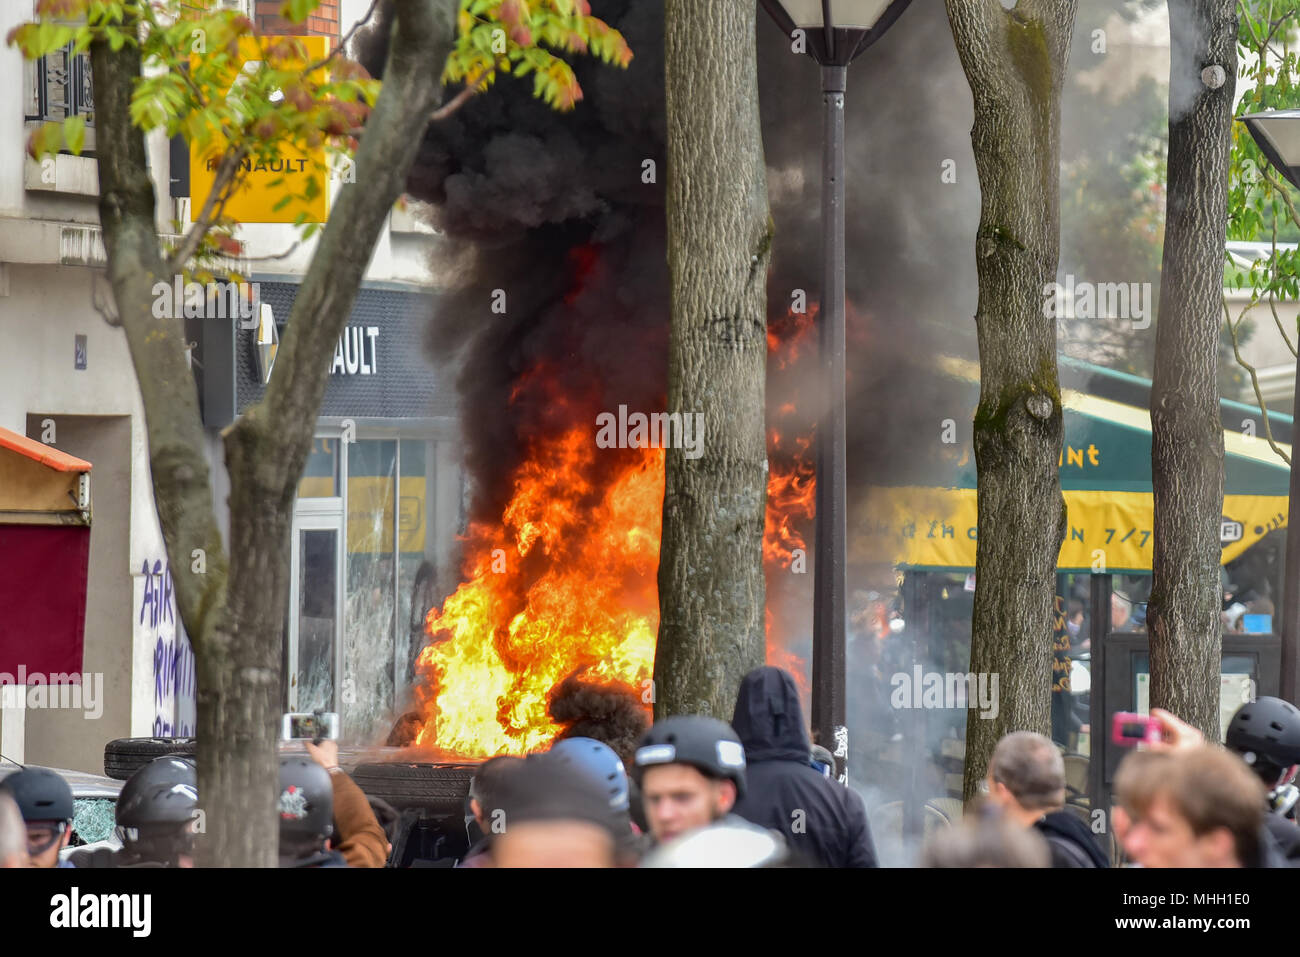 Paris, France. 1st May 2018. Paris police clash with protesters as demonstrations turn violent. PICTURED: 'Black Bloc' protesters smashed their way into a Renault car showroom and set a motorbike on fire. Credit: Peter Manning/Alamy Live News Stock Photo